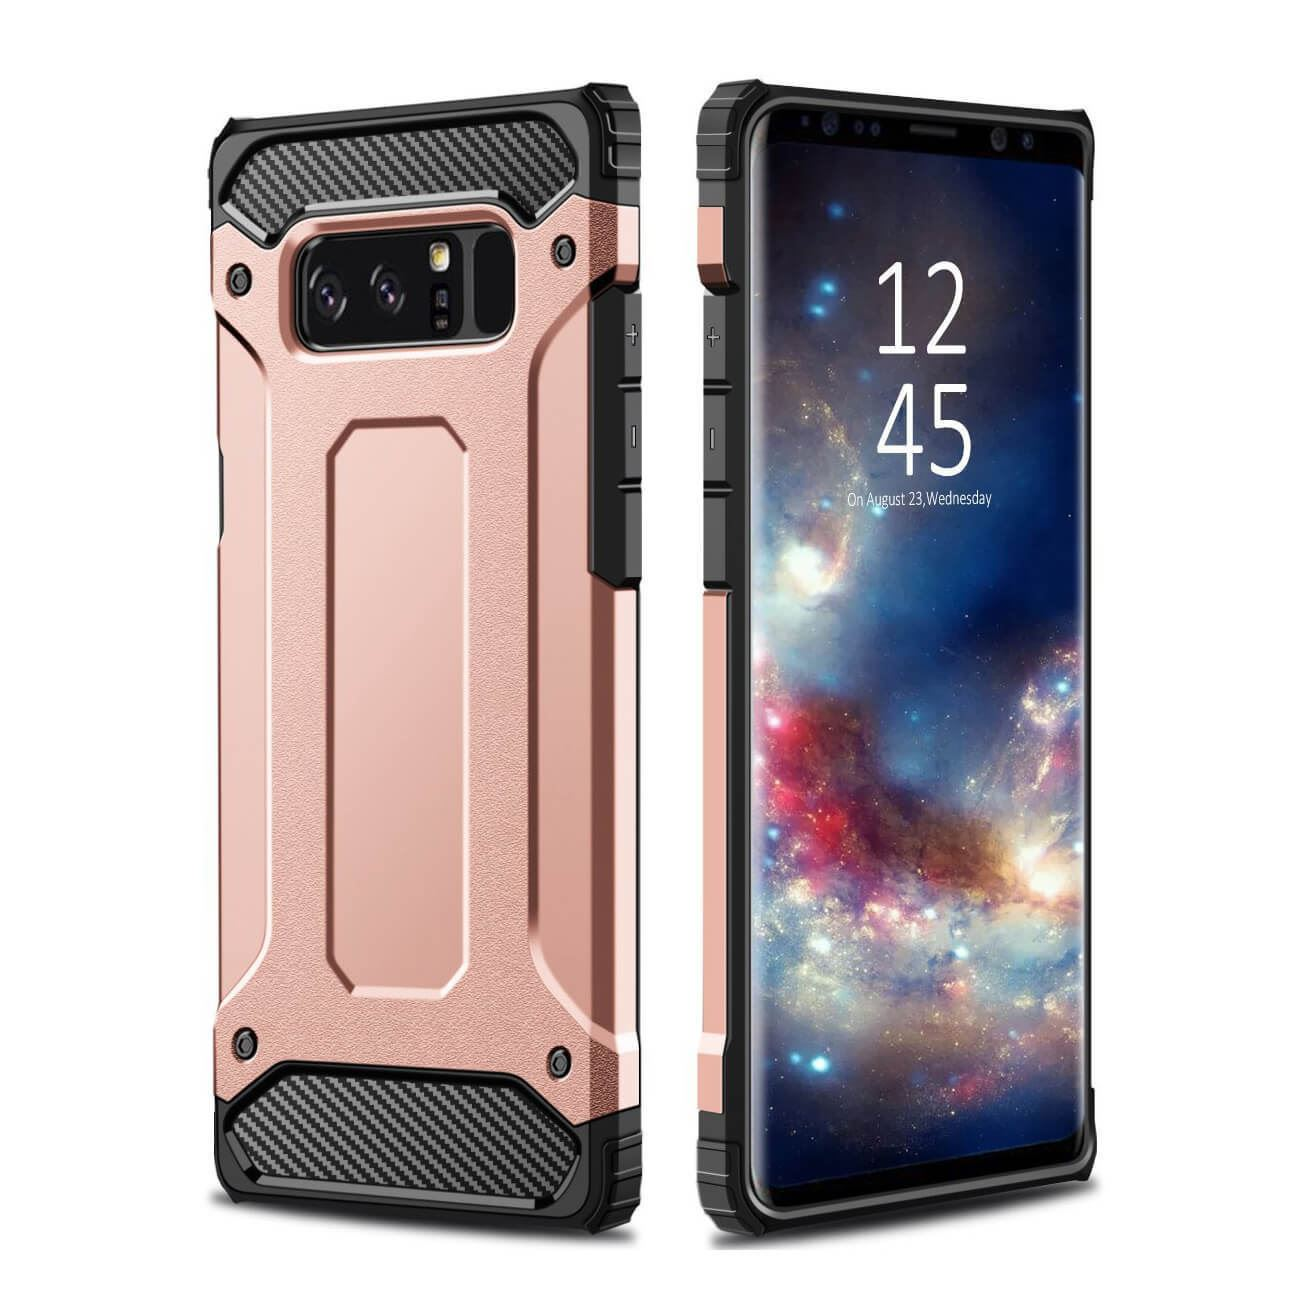 Hybrid-Armor-Shockproof-Rugged-Bumper-Case-For-Samsung-Galaxy-S7-Edge-S8-Note-S9 縮圖 36